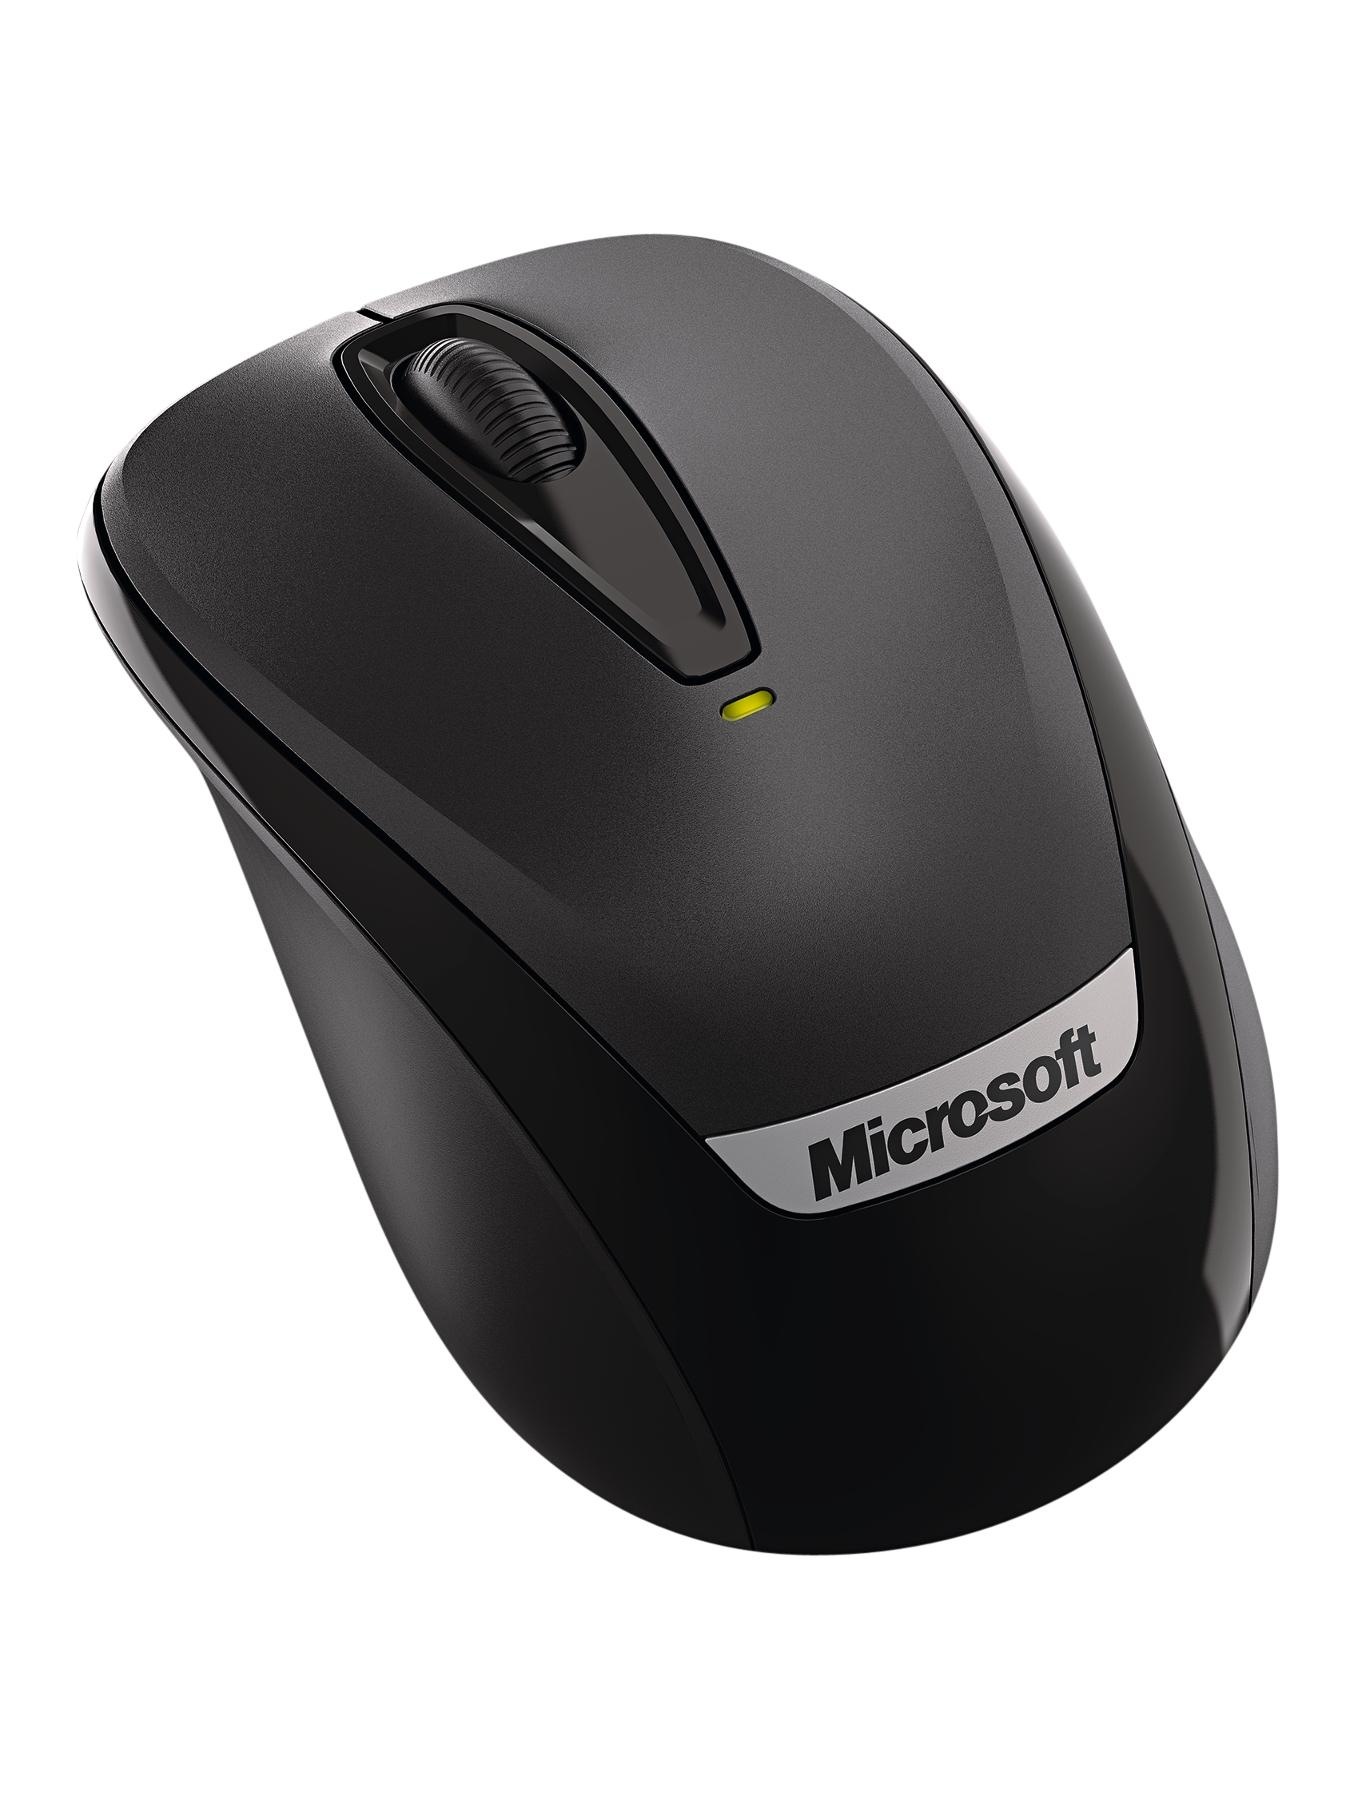 3000 v2 Wireless Mobile Mouse